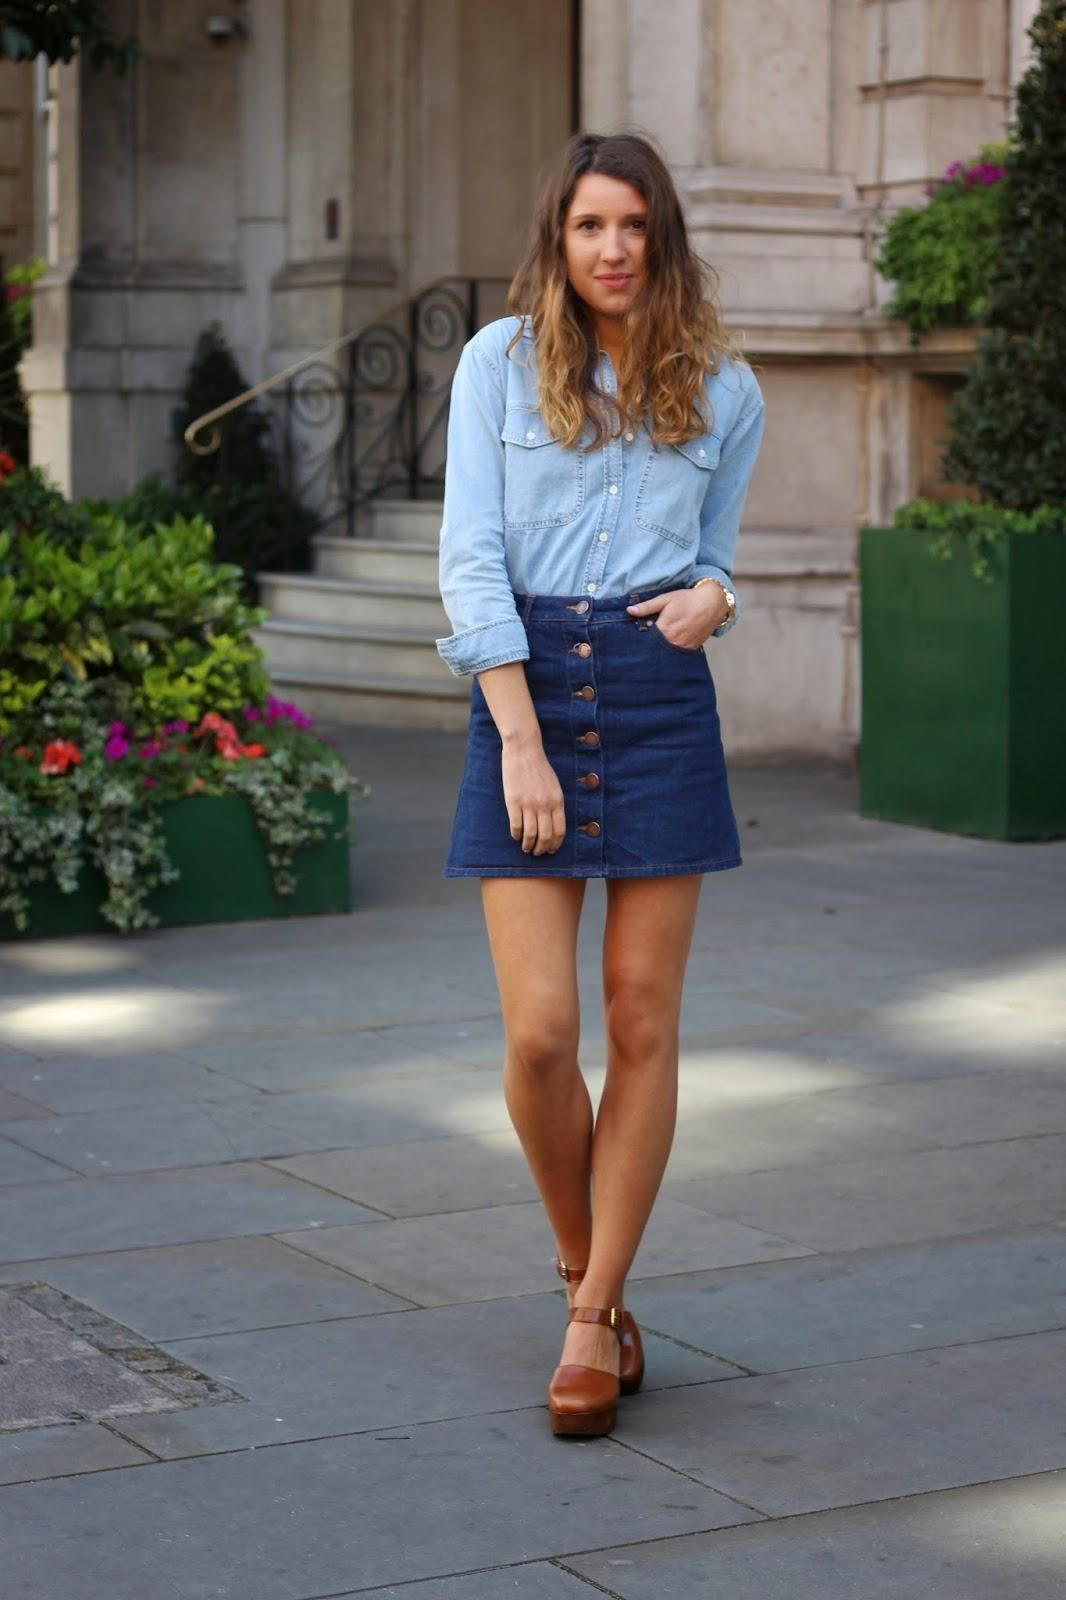 7c7a3268102 20 Modern Ways to Style a Denim Skirt for Spring - double denim ensemble  with a dark wash a-line denim skirt + light wash chambray shirt worn with  brown ...